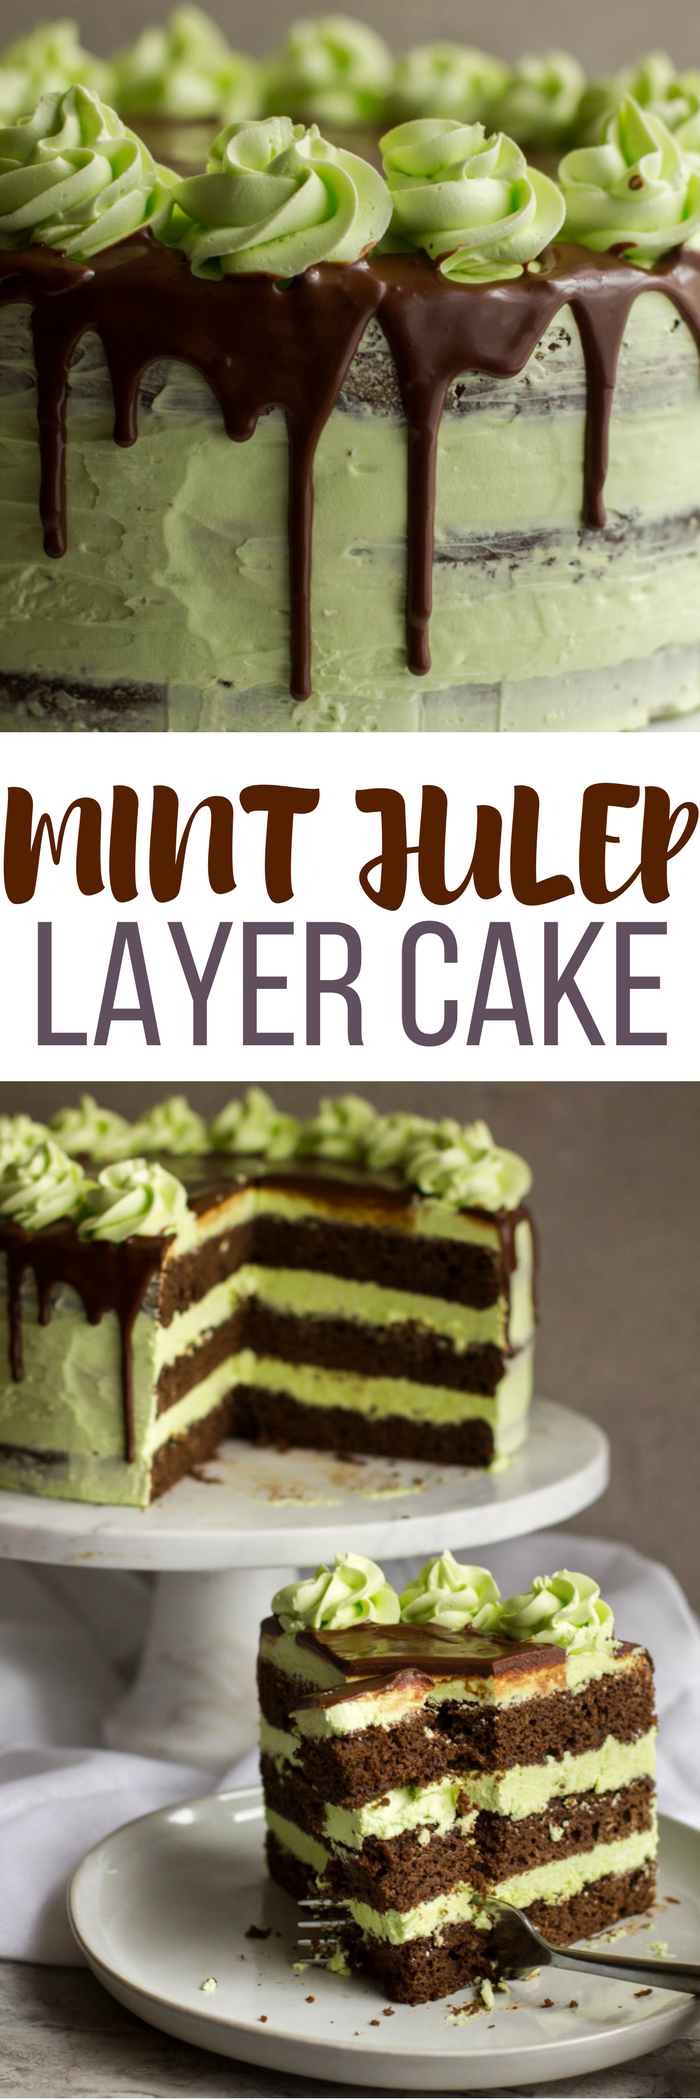 This Mint Julep Layer Cake is a delicious, moist chocolate bourbon cake with a mint swiss buttercream and chocolate ganache drip. Perfect for Derby Day or anyone that loves mint juleps!